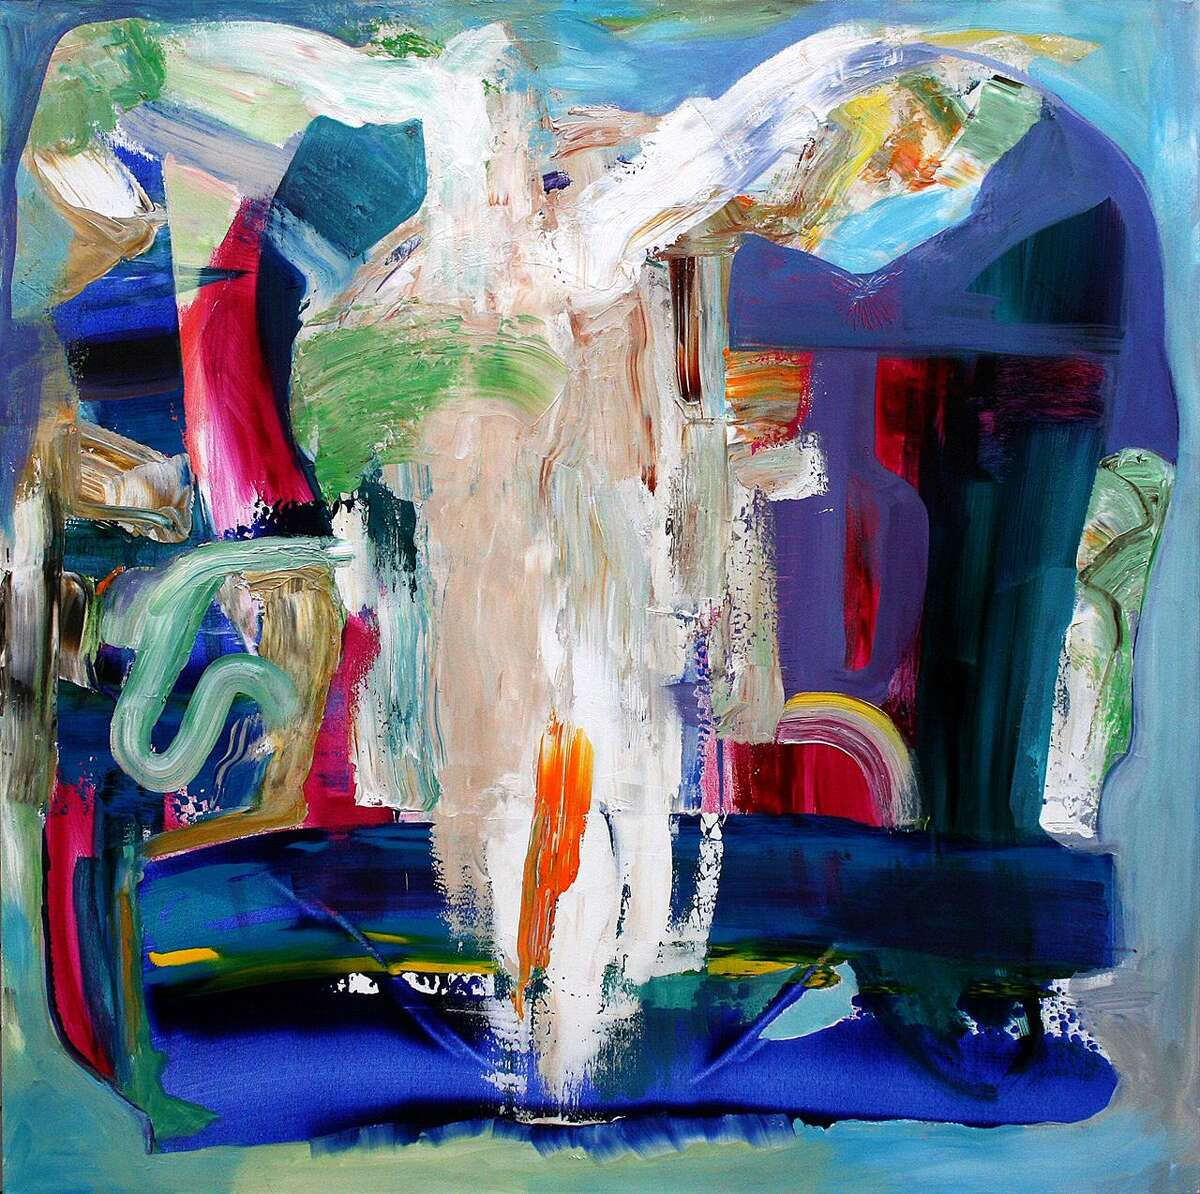 Westport artist Jay Petrow's emotionally charged abstract expressionist paintings, influenced by raising a son with autism, are being featured in